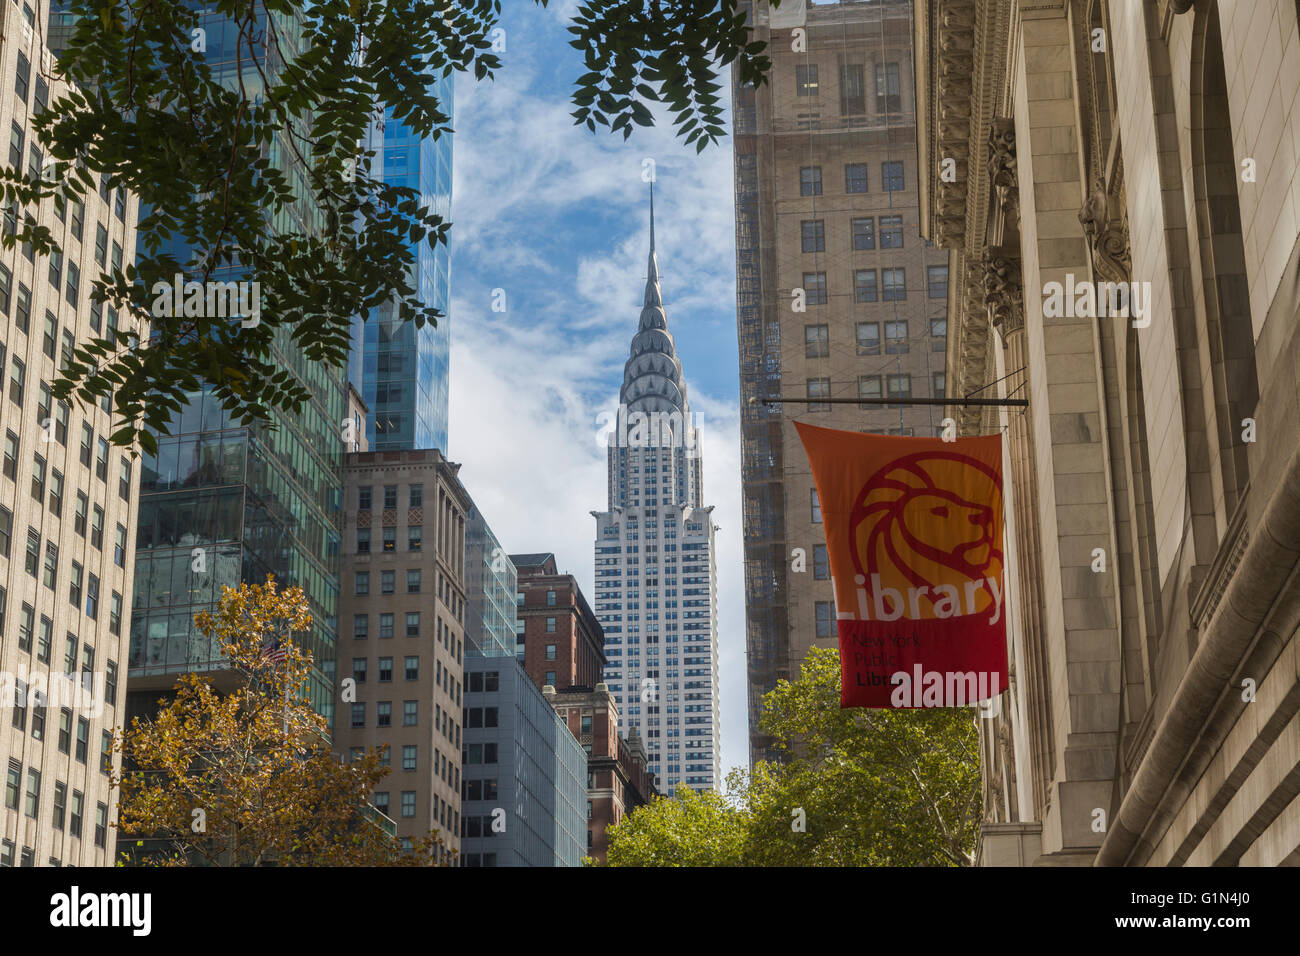 New York, New York State, United States of America.  Looking up 42nd Street from outside the New York Public Library - Stock Image